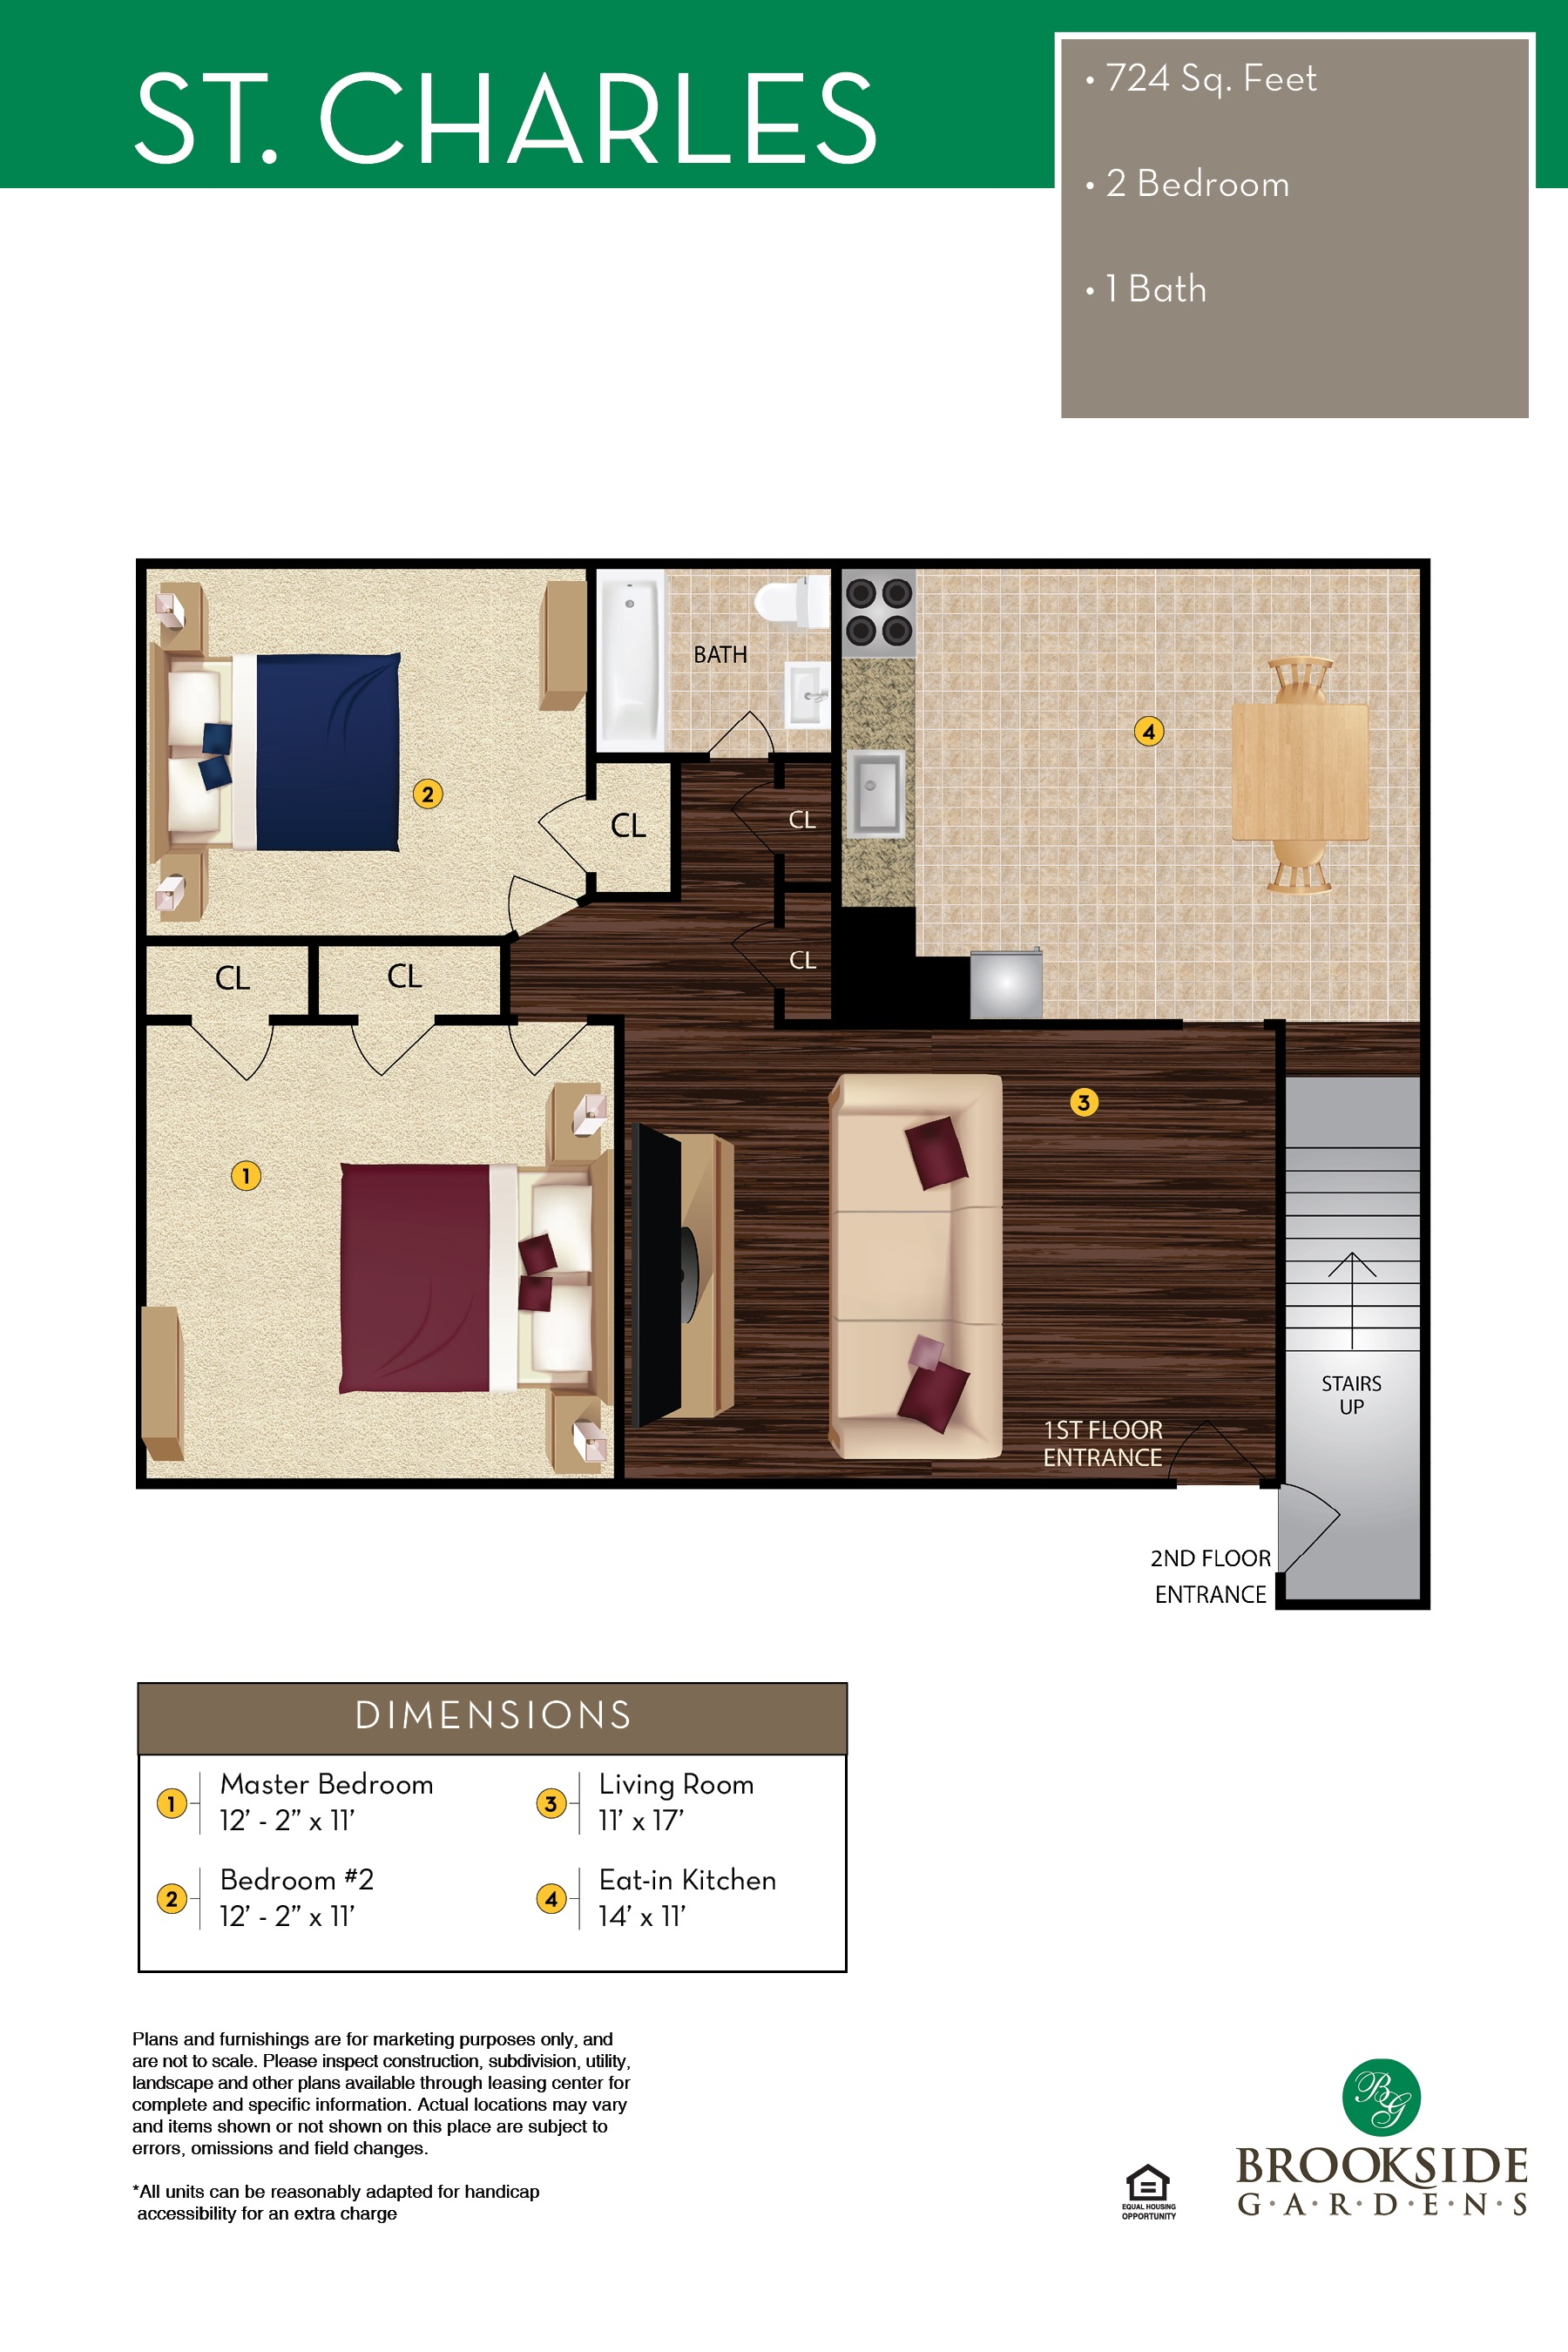 Brookside Gardens St. Charles Floor Plans